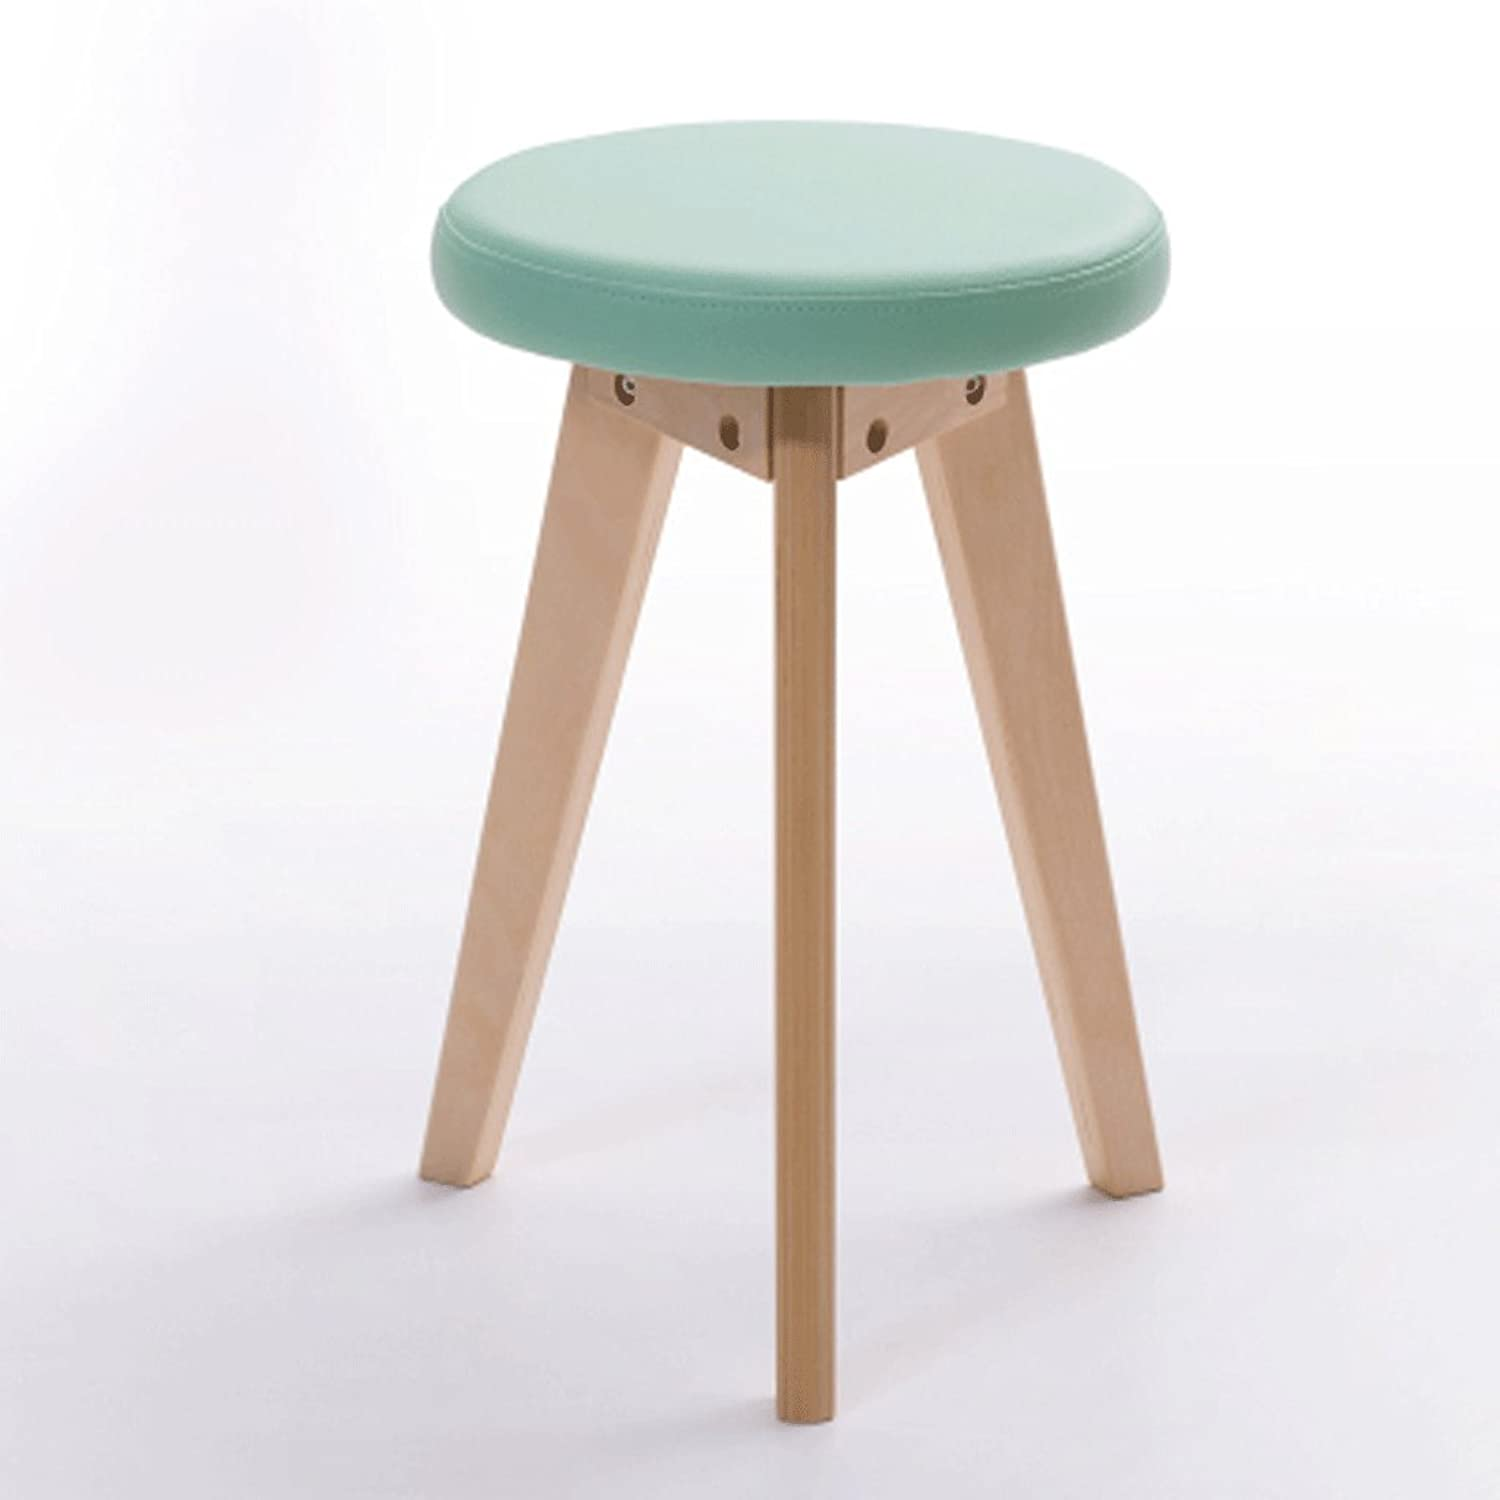 Solid Wood Stool Small Round Stool Stool Stool Dining Chair Leisure Chair Home Creative Leisure Korean Style Dressing Stool Makeup Stool shoes Bench (color   A)